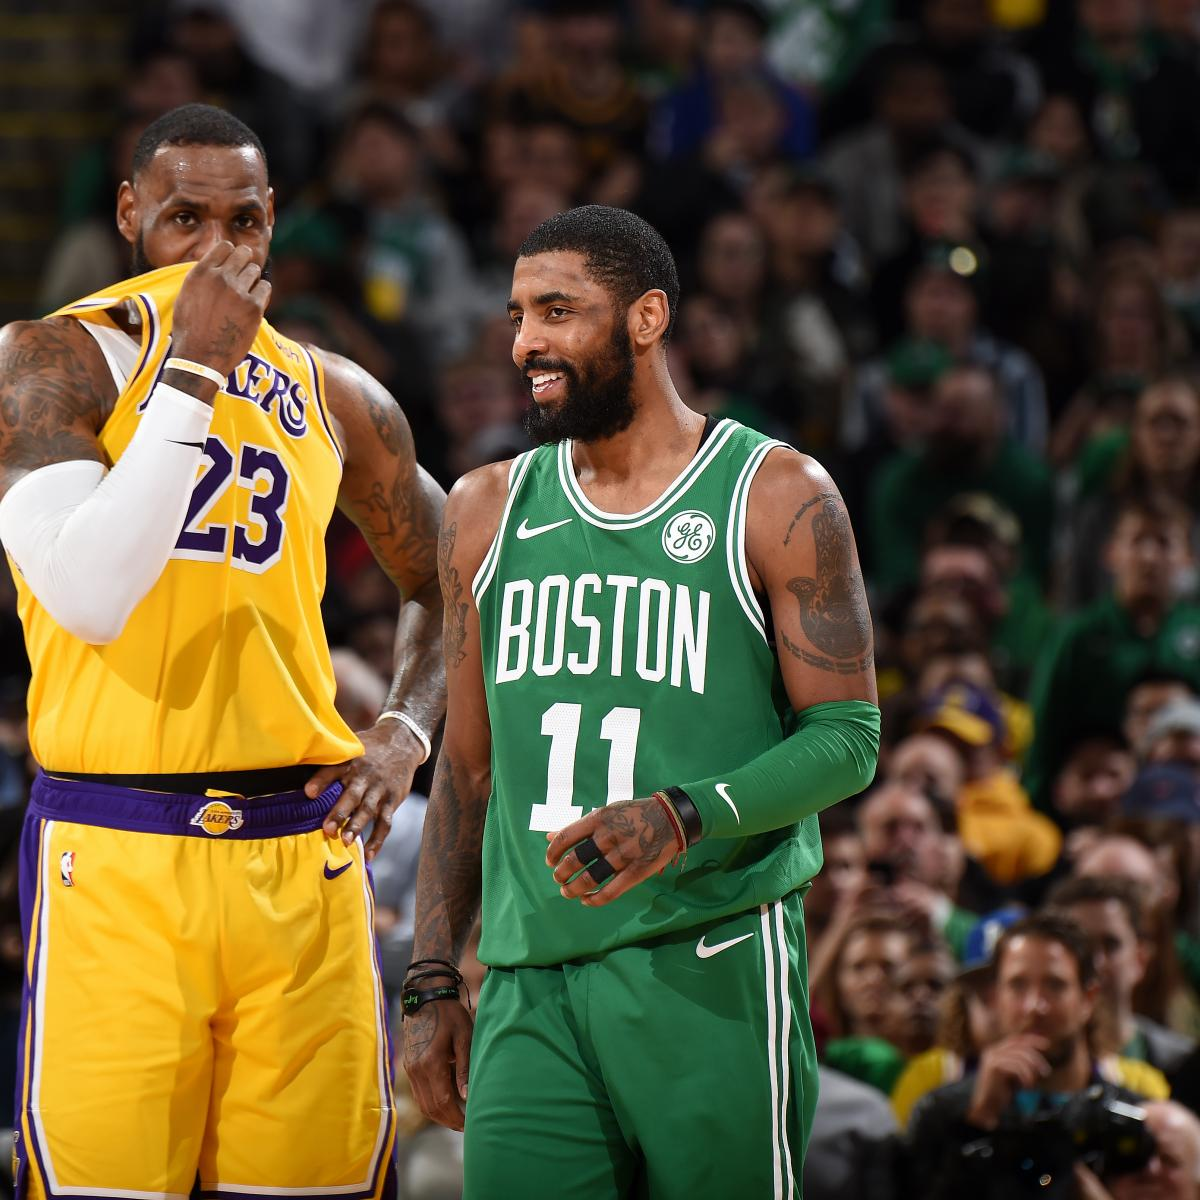 8cee833d544 LeBron James, Lakers Beat Kyrie Irving, Celtics After Anthony Davis Trade  Rumors